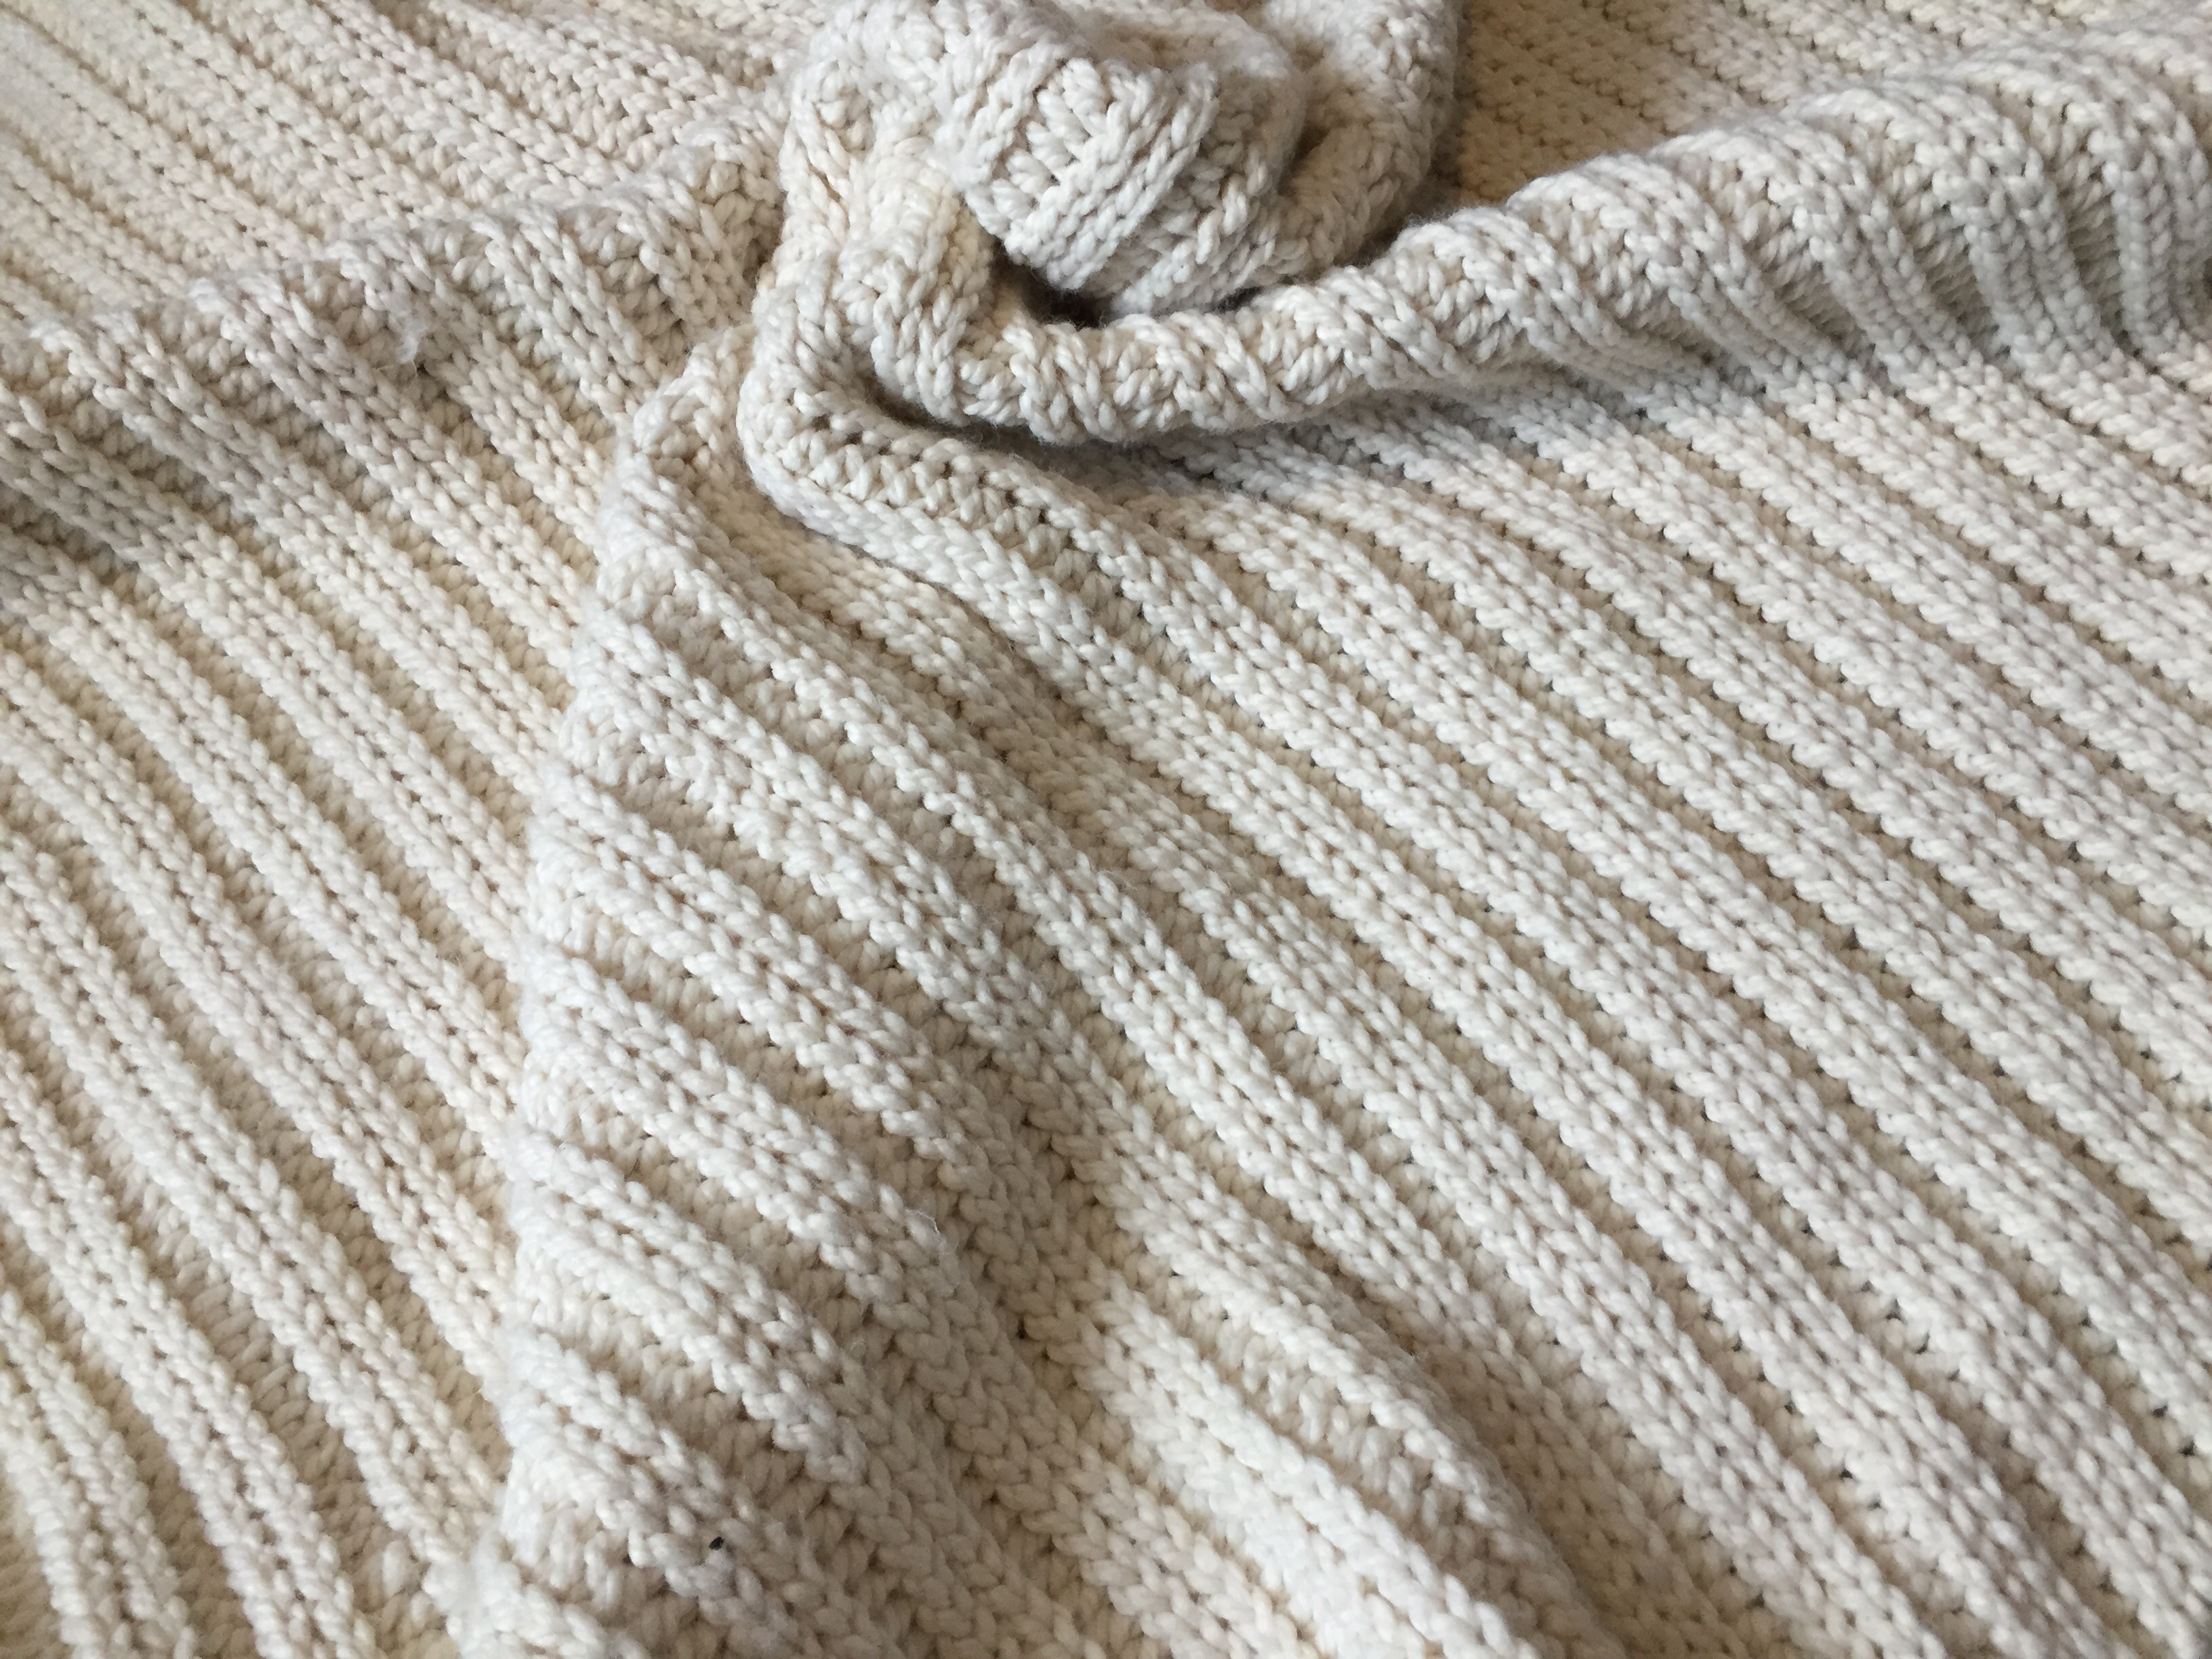 close up of a crochet blanket